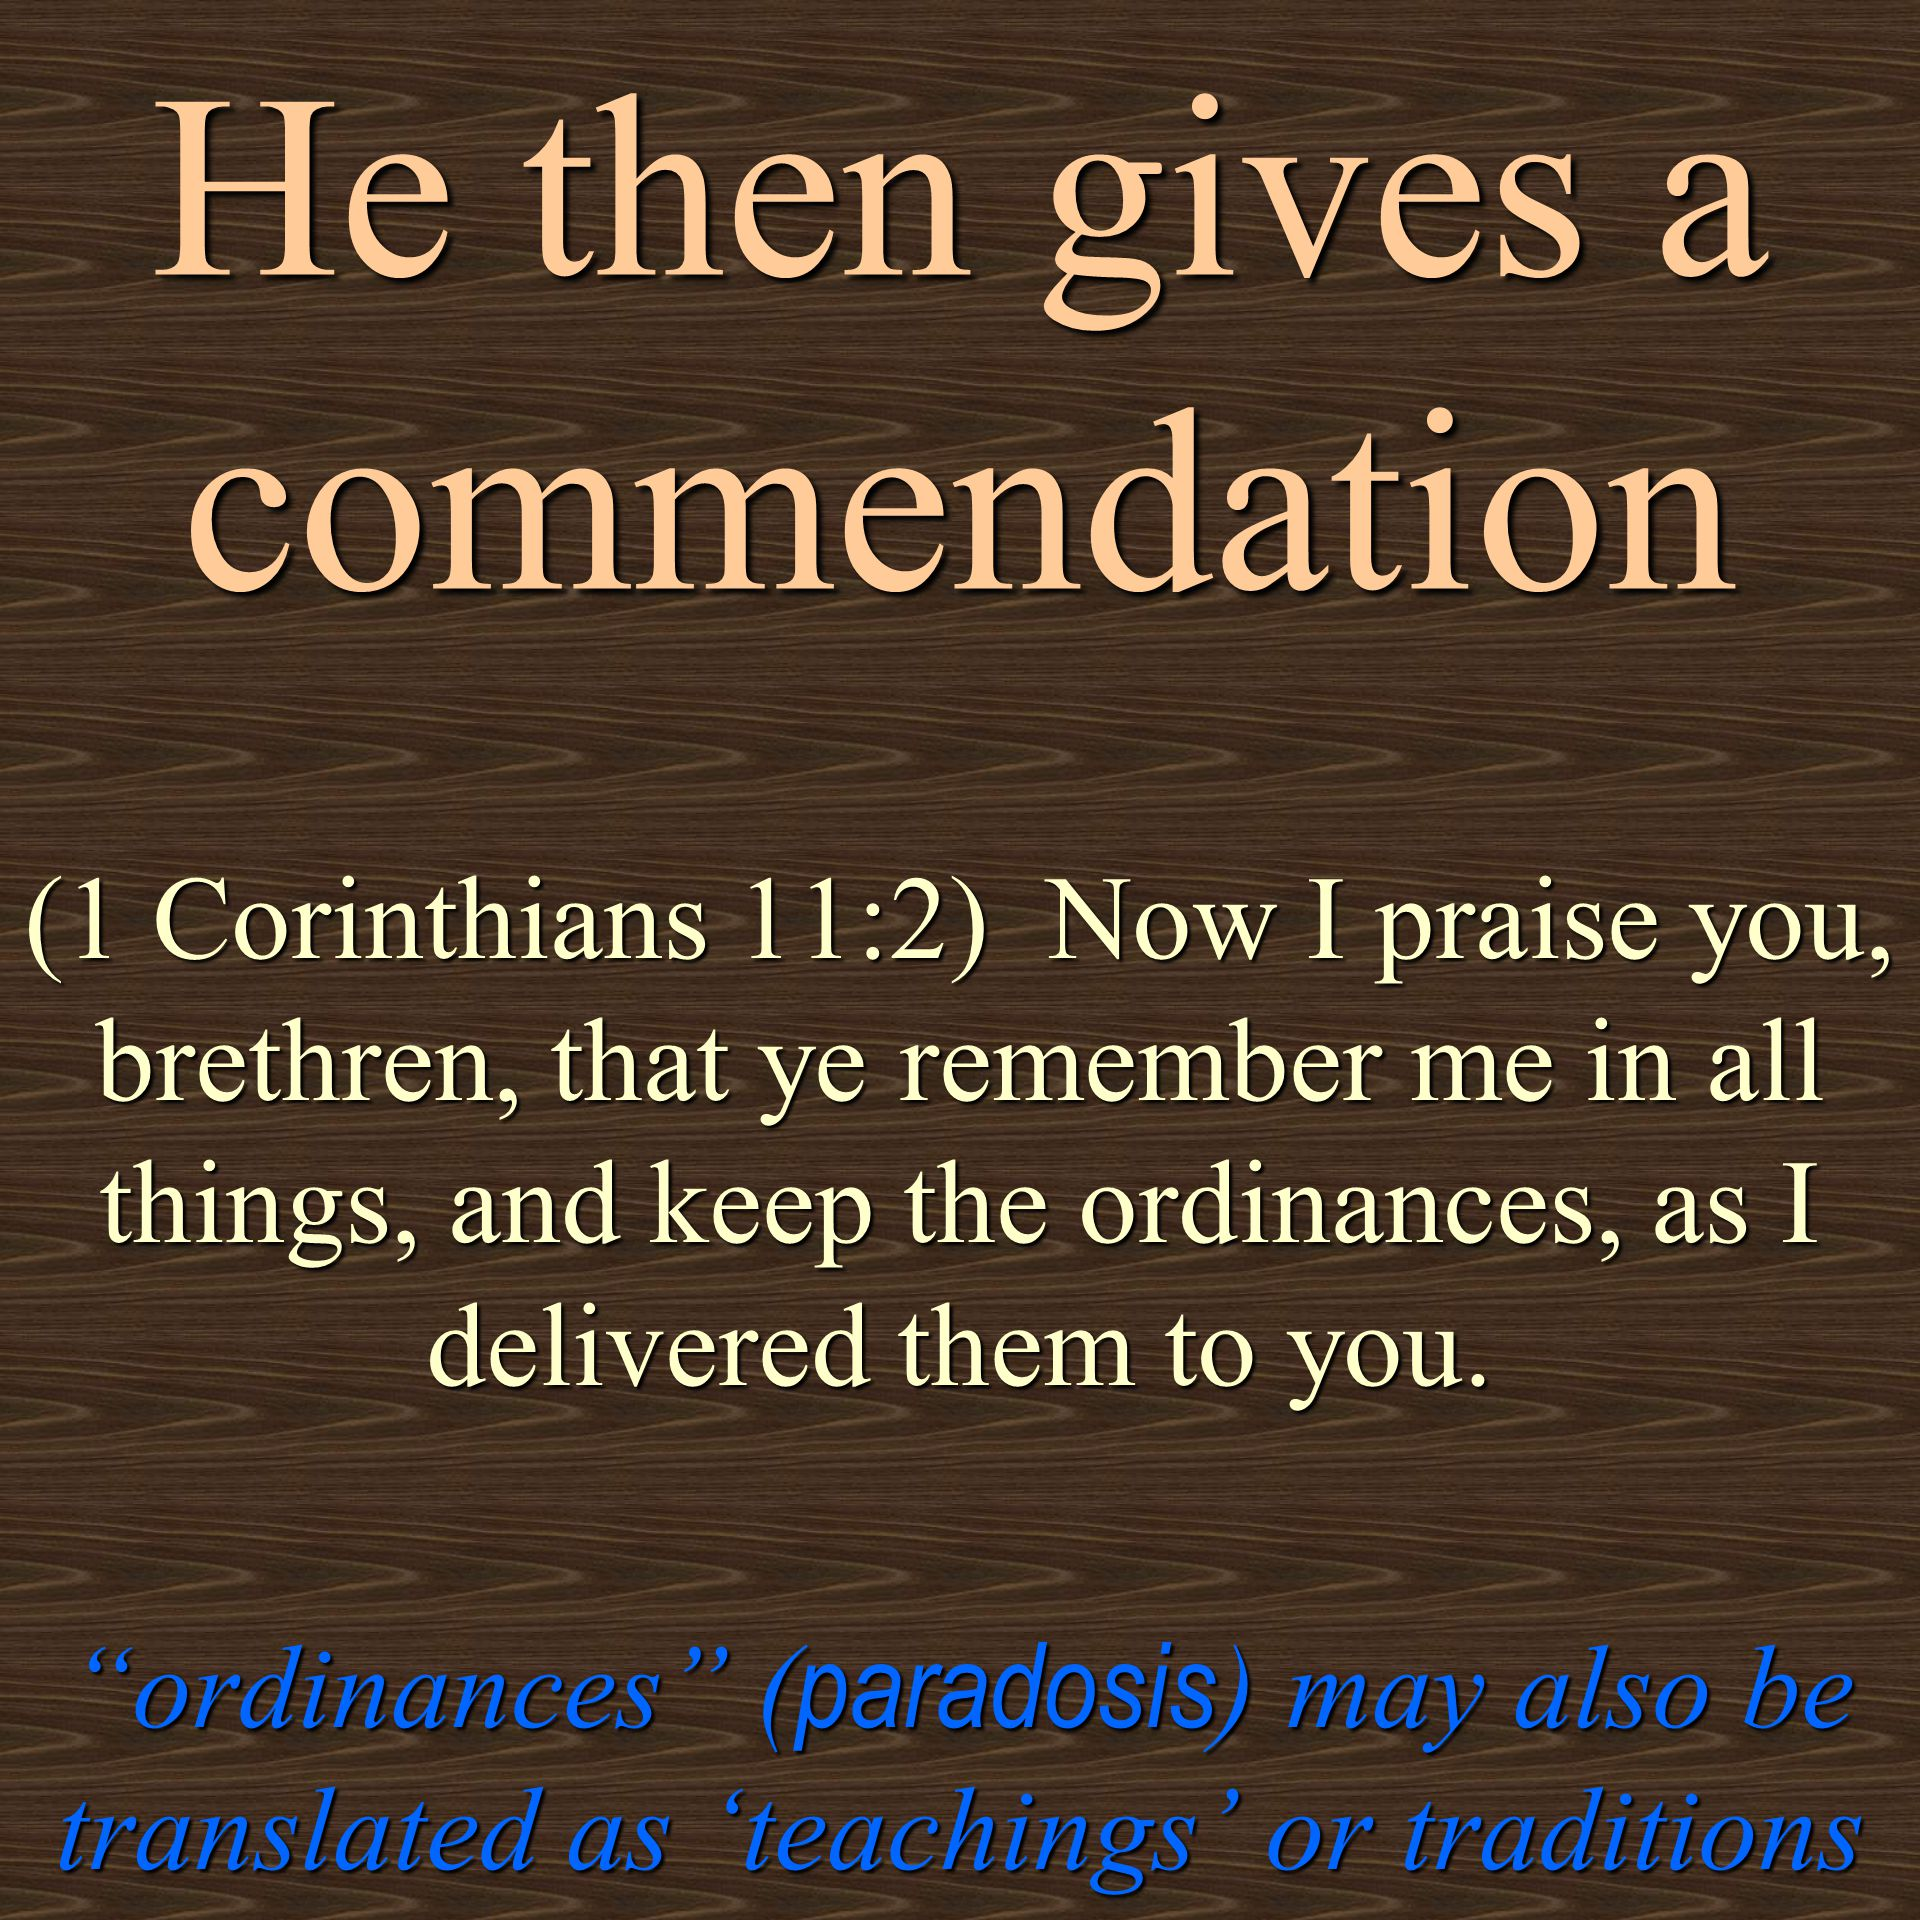 He then gives a commendation (1 Corinthians 11:2) Now I praise you, brethren, that ye remember me in all things, and keep the ordinances, as I delivered them to you.